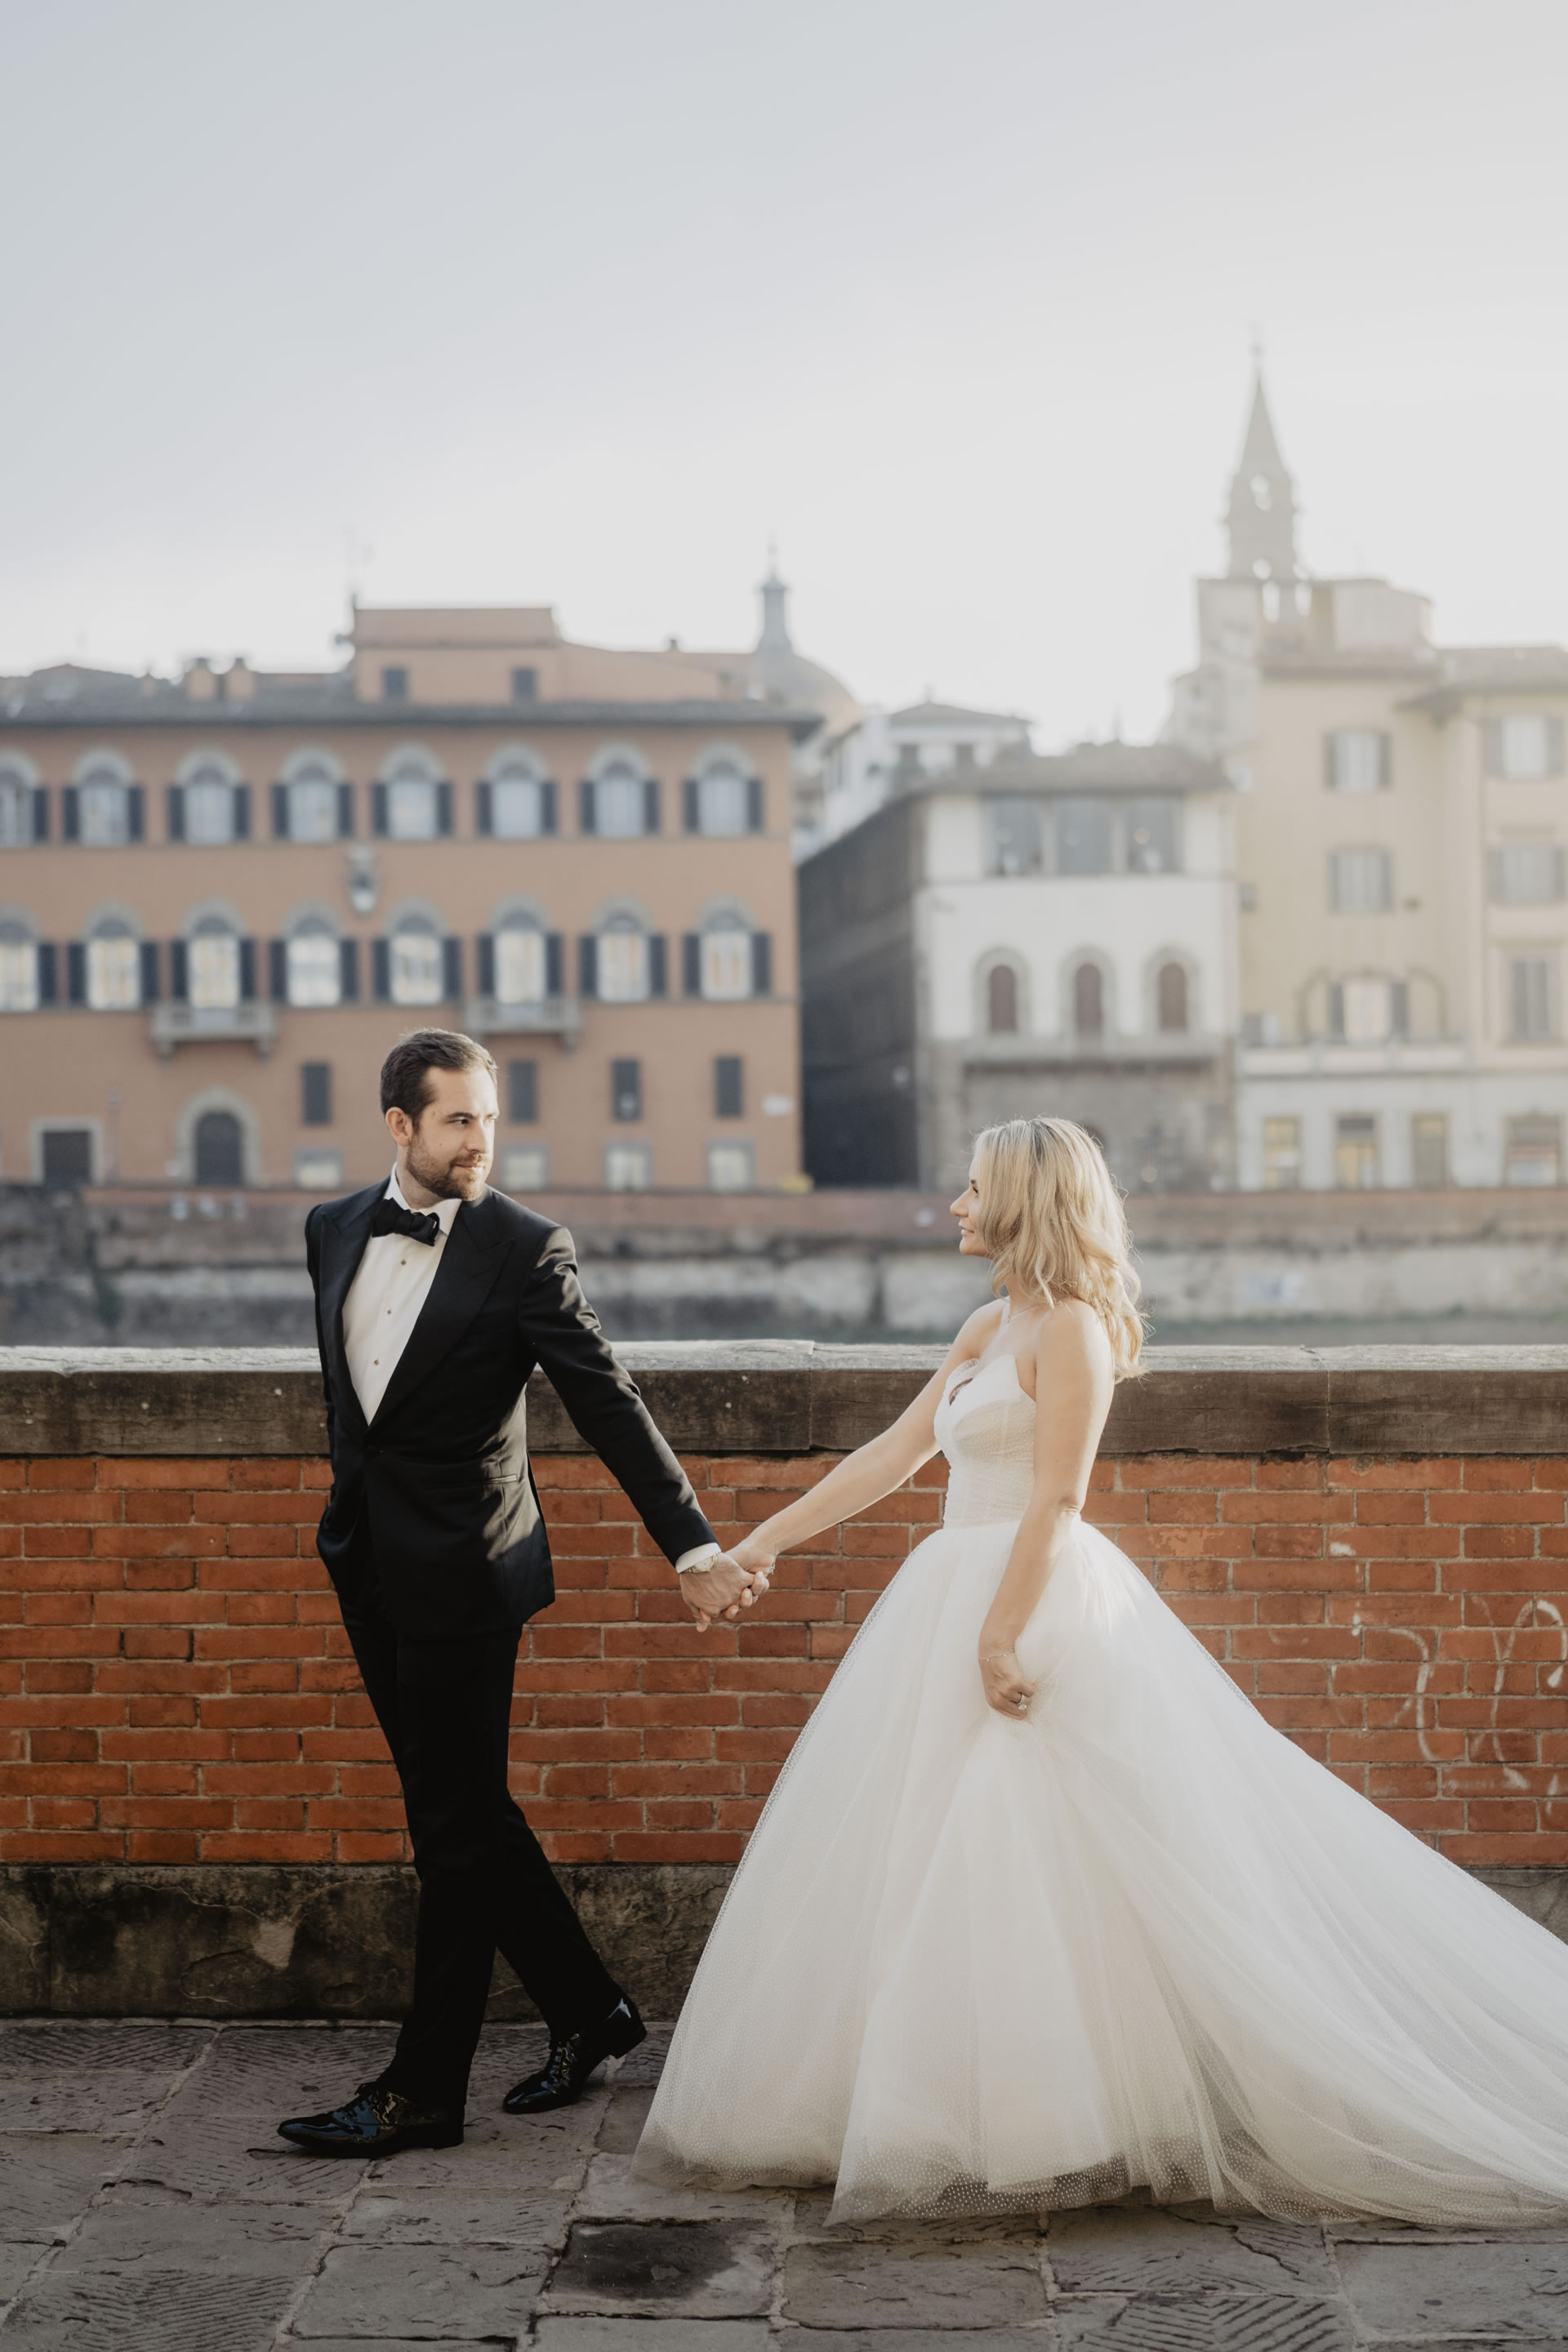 A sparkling wedding in the shore of the Arno - 54 :: A sparkling wedding on the shore of the Arno :: Luxury wedding photography - 53 :: A sparkling wedding in the shore of the Arno - 54